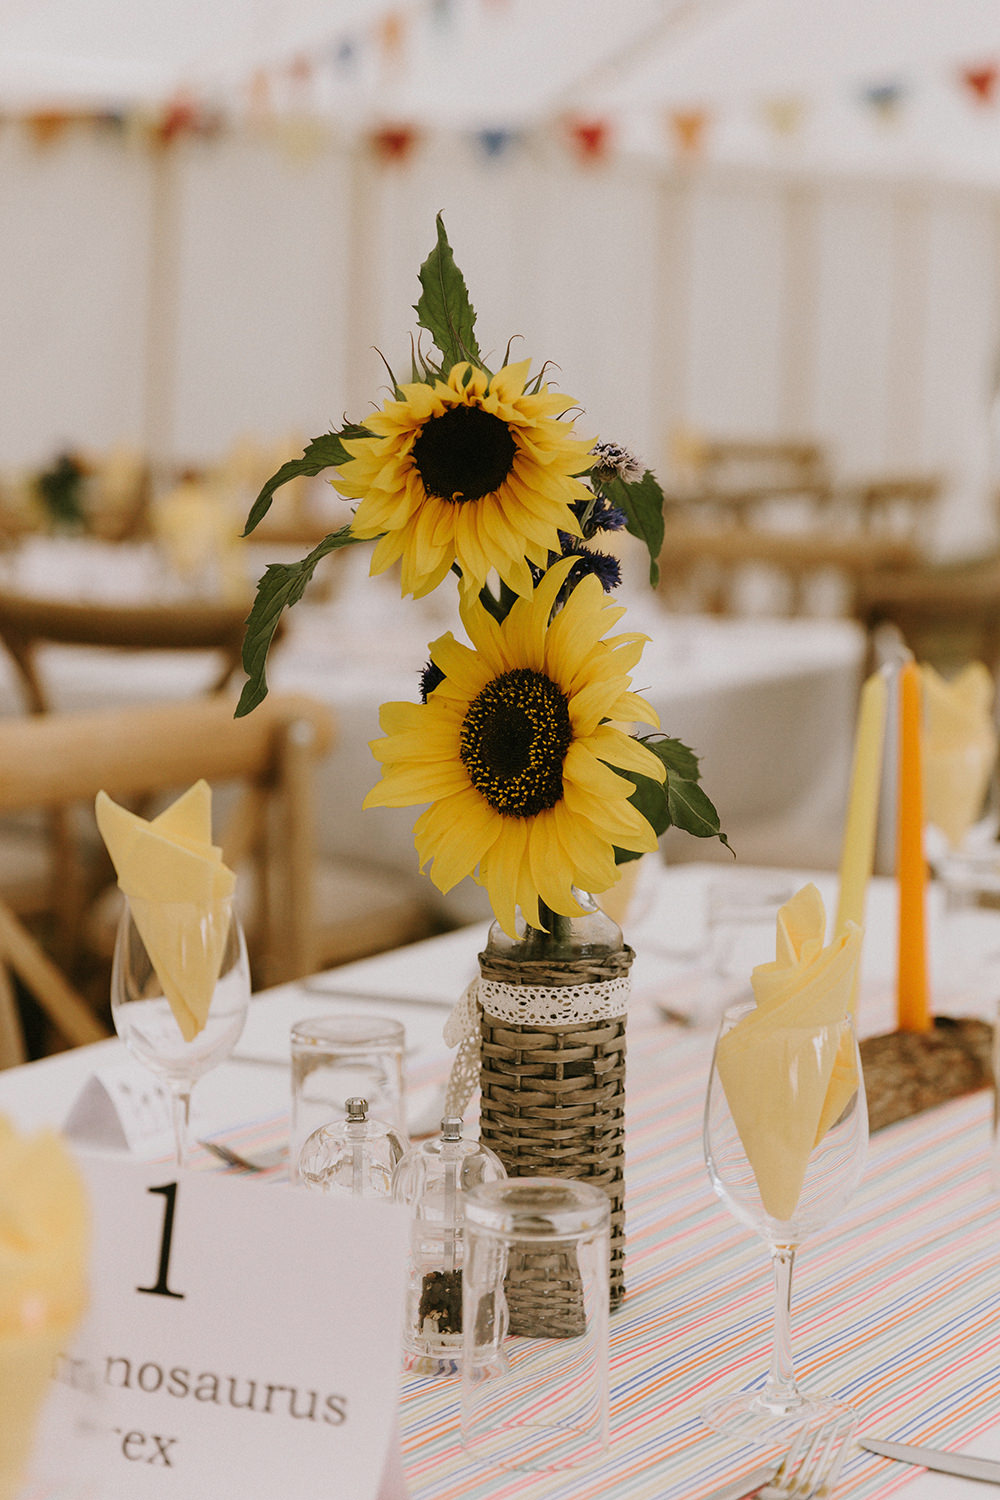 Table Flowers Centrepiece Sunflowers Wedding Chris Bradshaw Photography